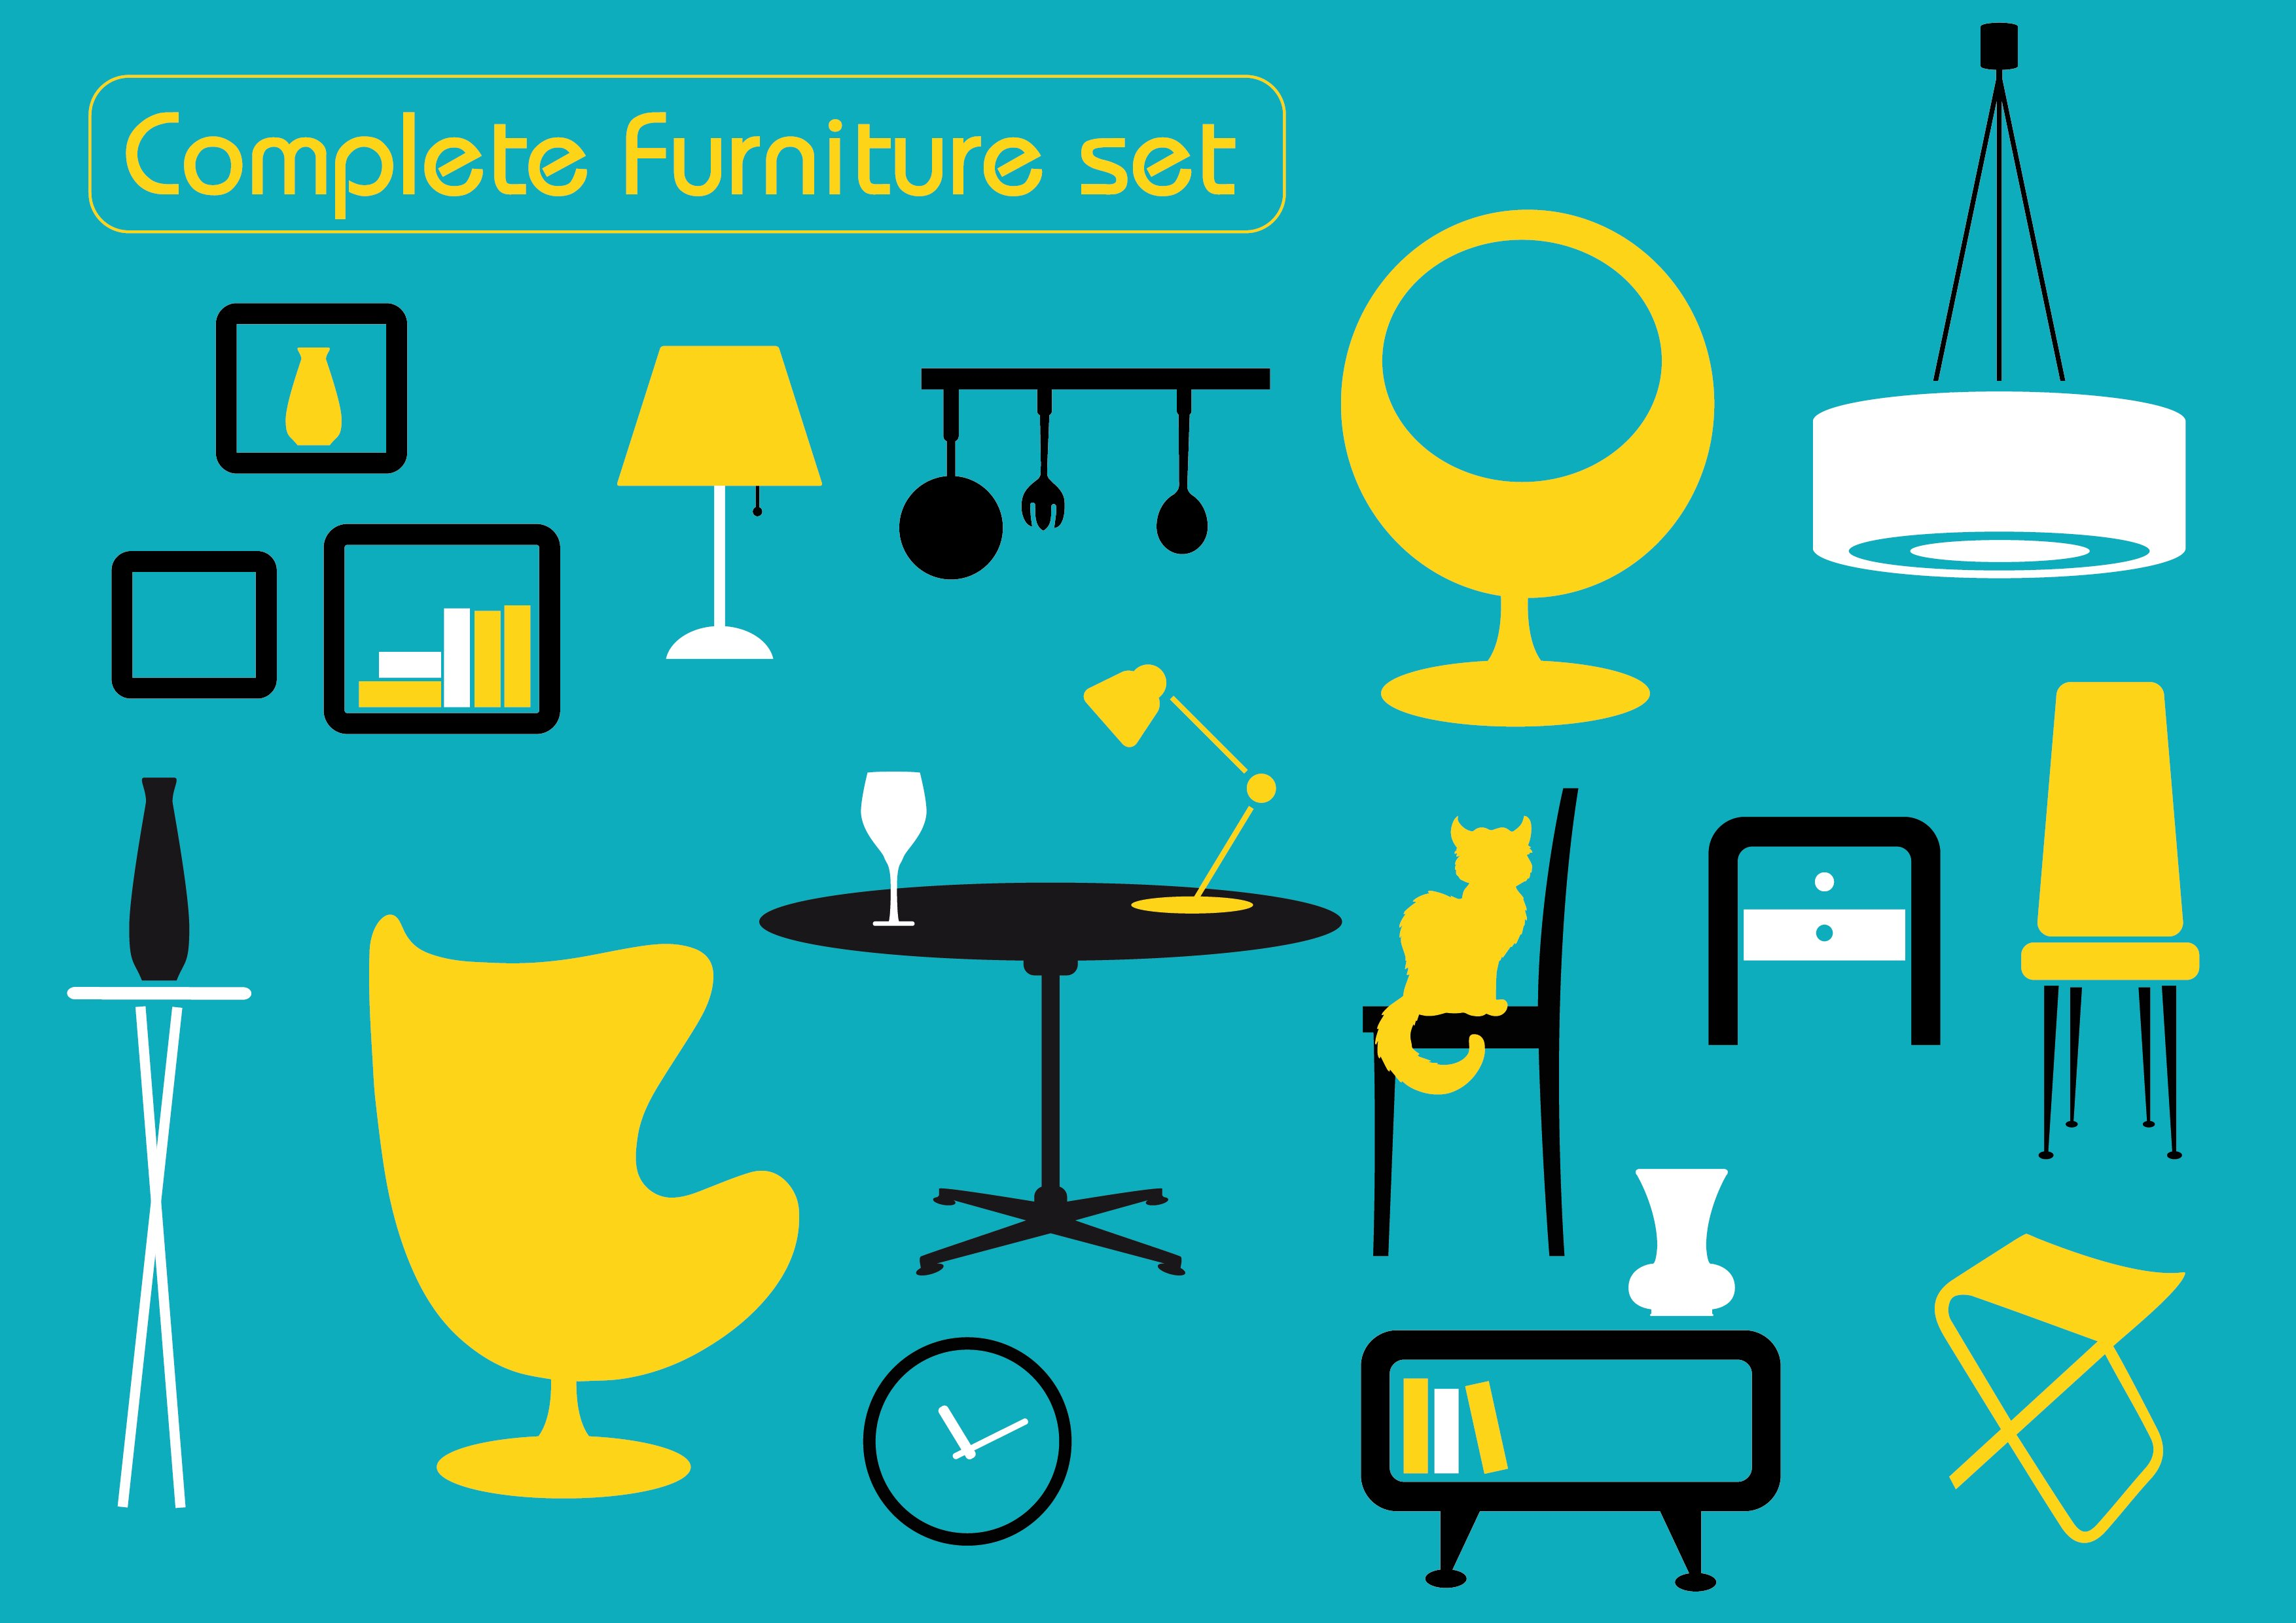 Furniture logo design png - Furniture Logo Design Png 32